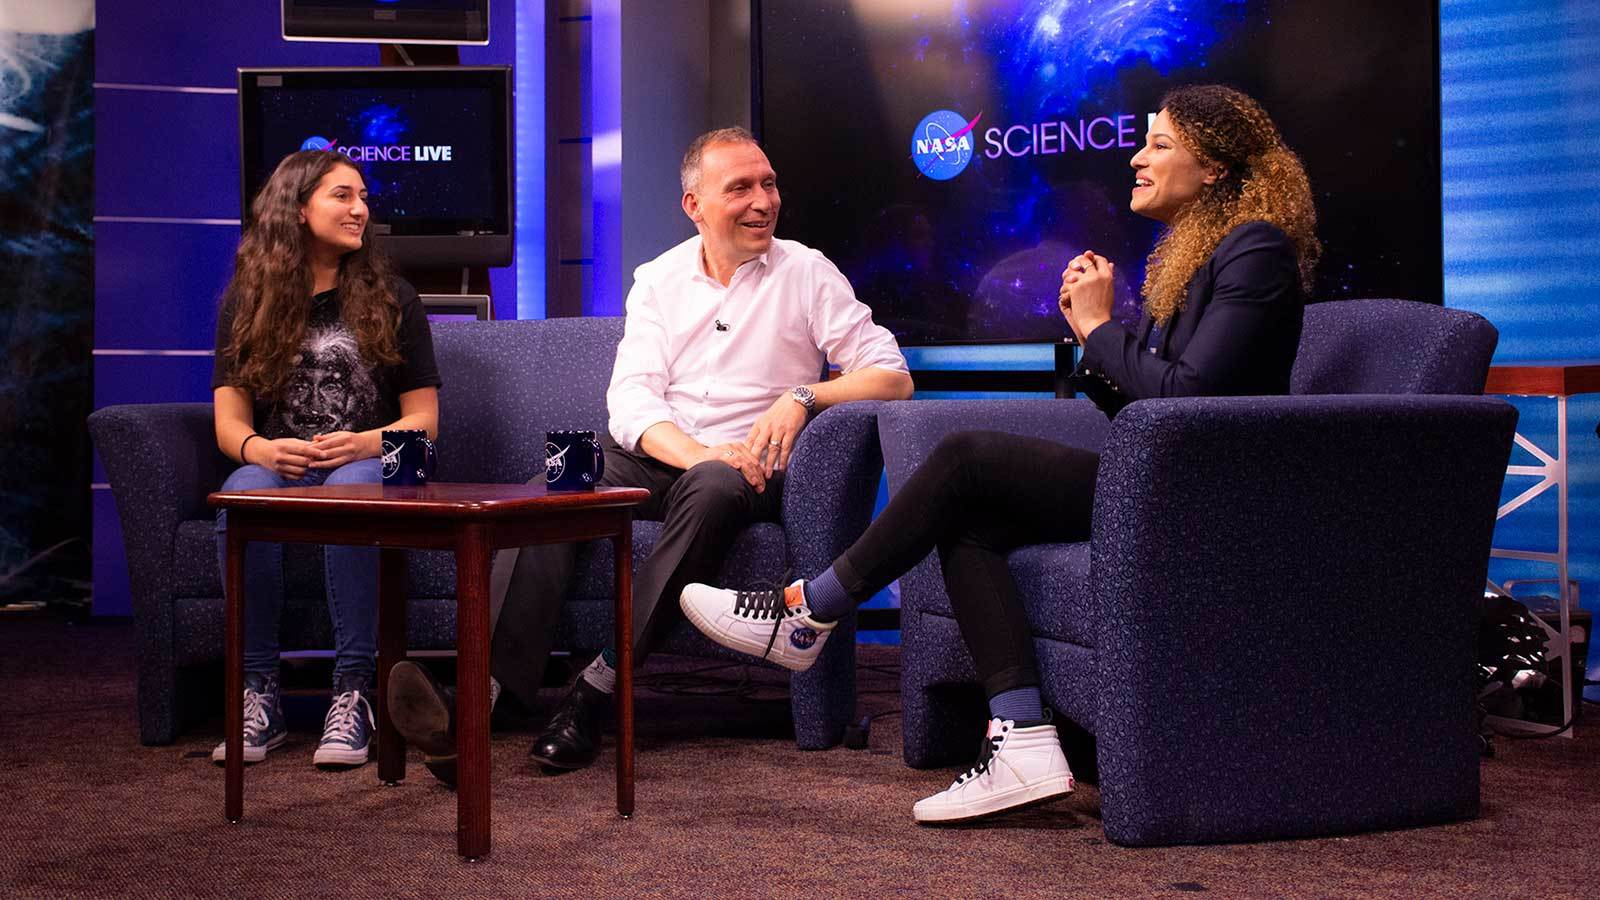 Ana Humphrey, a high school student, appears with Dr. Thomas Zurbuchen  and Sophia Roberts on the NASA Science Live talkshow run out of Goddard Space Flight Center.